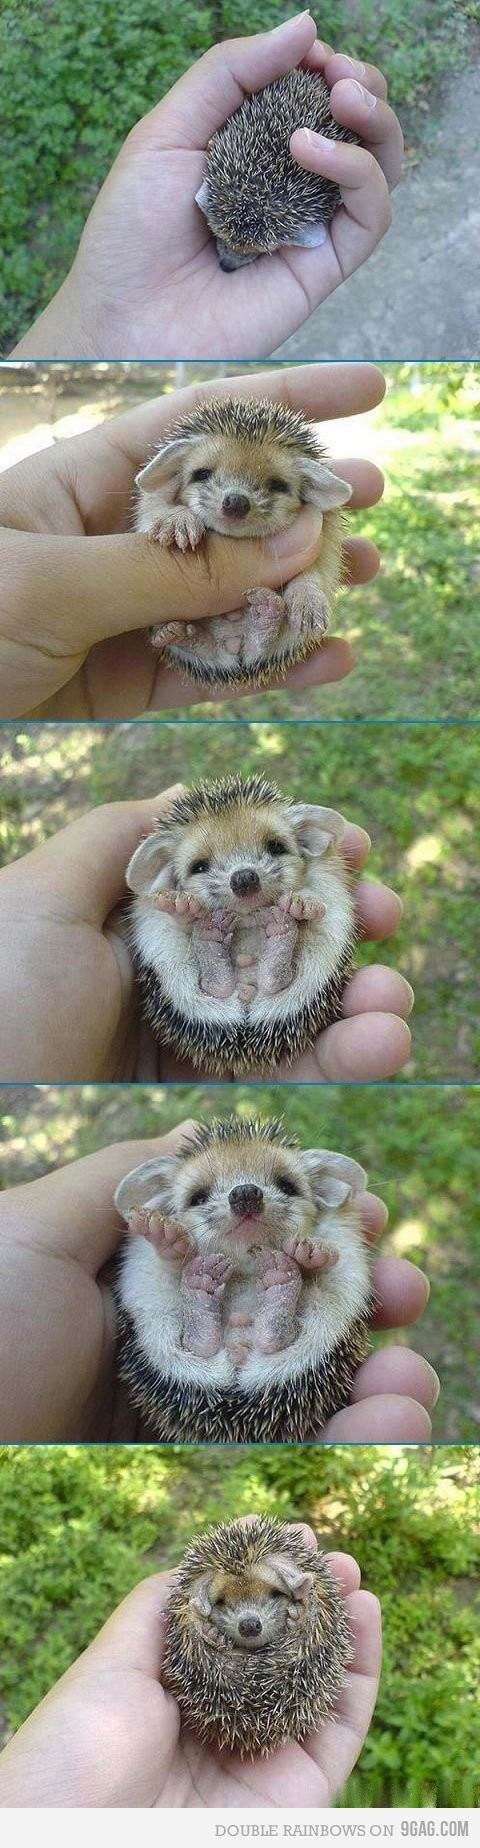 Hedgehog! ME WANT! In all honesty, I've wanted a pet hedgehog ever